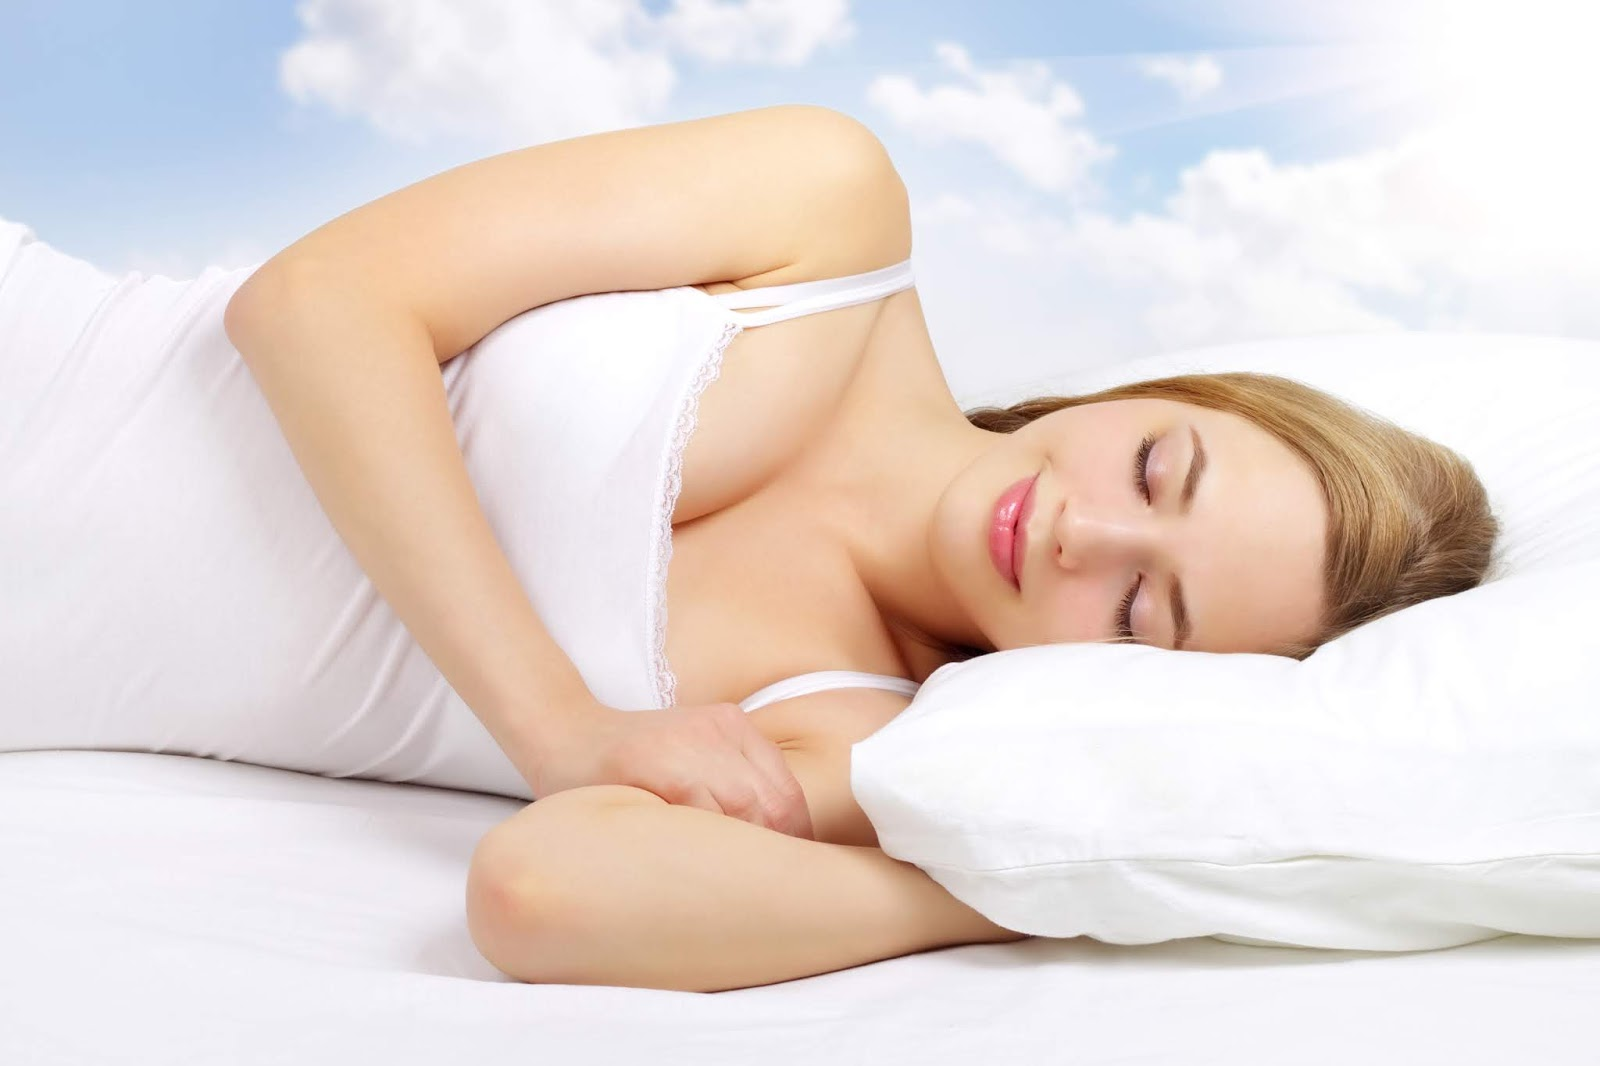 Only 48 per cent of the 1,022 Singaporeans surveyed reported getting seven to eight hours of sleep each night.